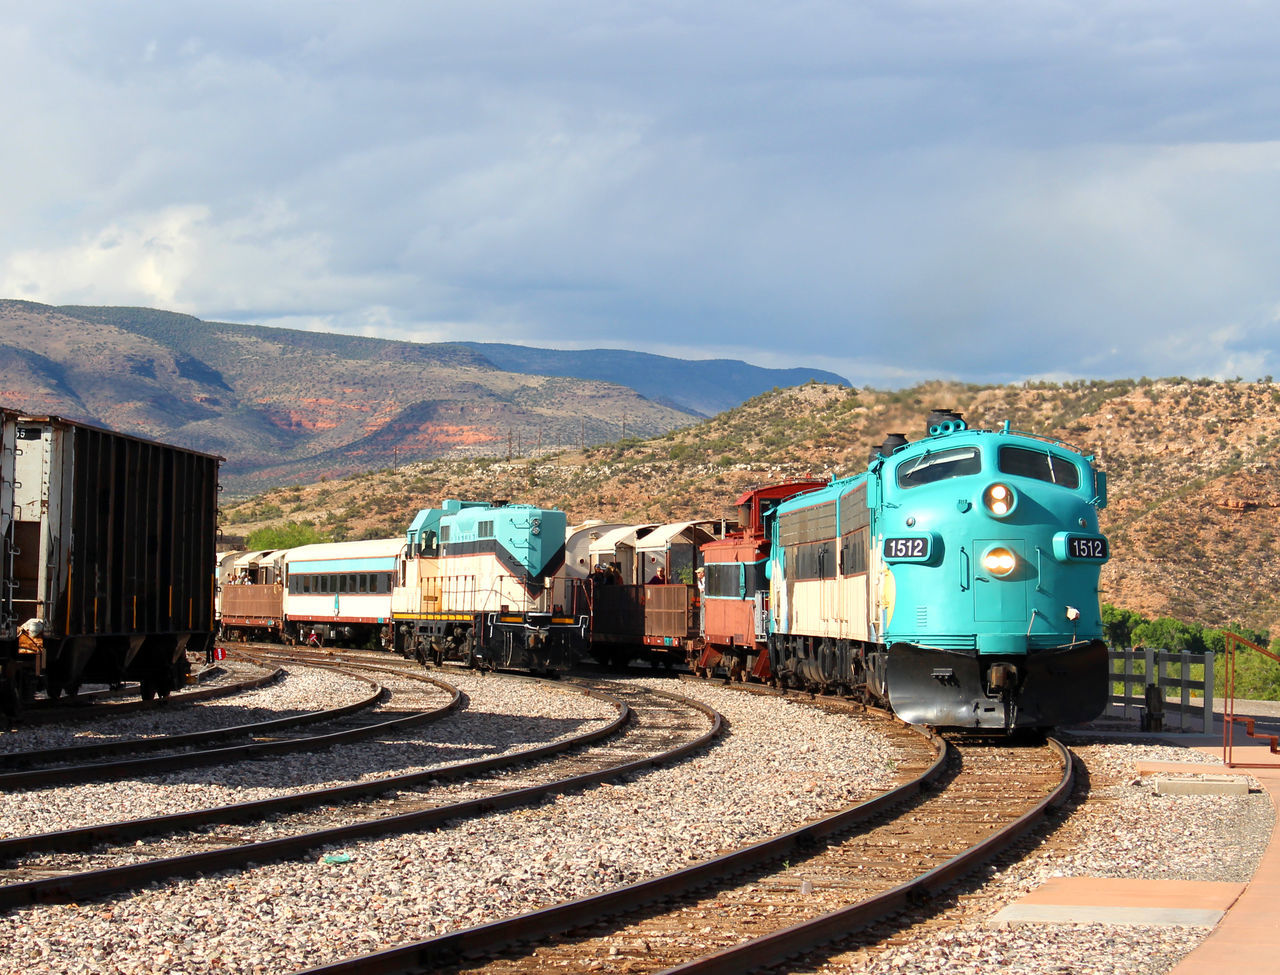 Arizona Blue Locomotive Engine No People Passenger Train Railroad Love Railroad Track The Way Forward Train Train Tracks Trainphotography Transportation Travel Destinations Verde Canyon Railroad